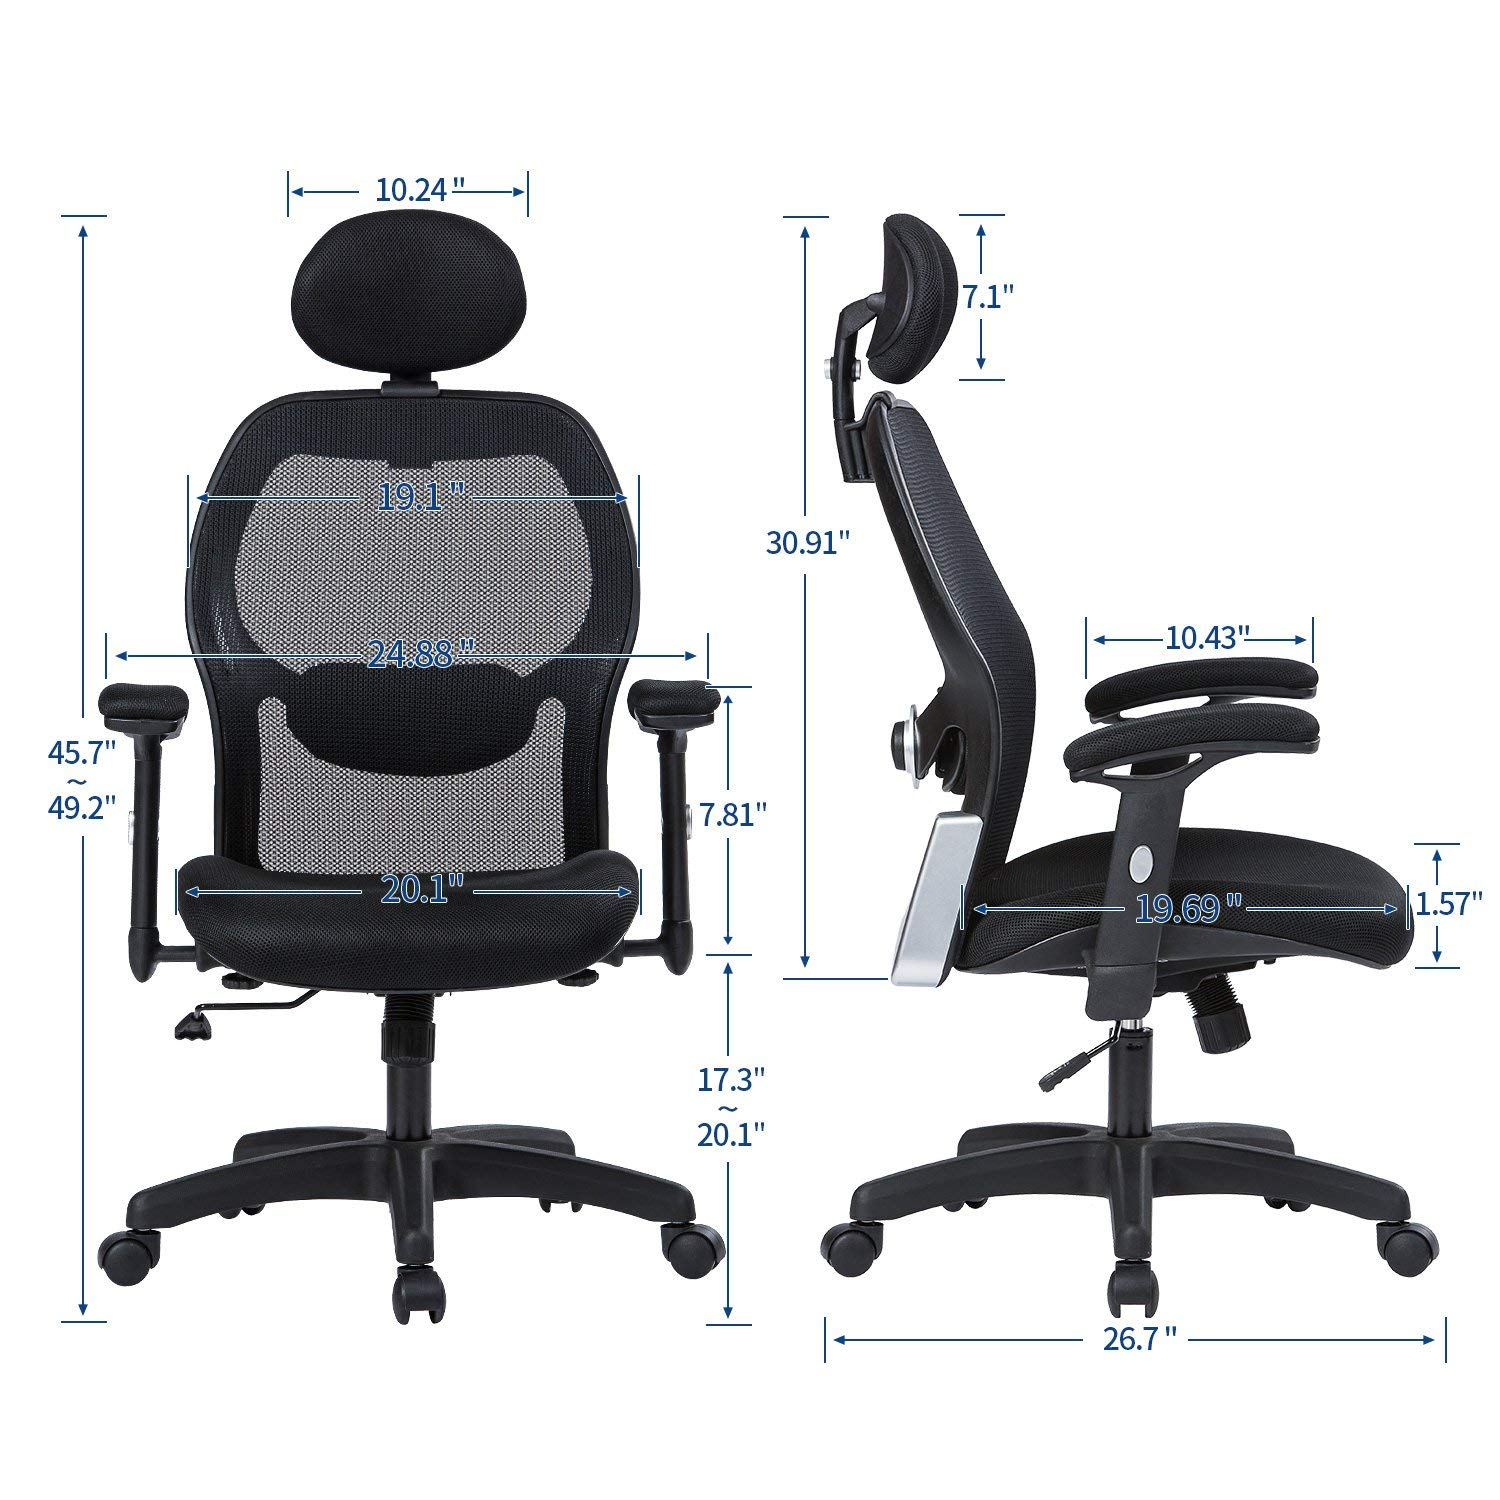 LIANFENG Ergonomic Office Chair, High Back Executive Swivel Computer Desk Chair with Adjustable Armrests and Headrest, Back Lumbar Support, Black by LIANFENG (Image #6)